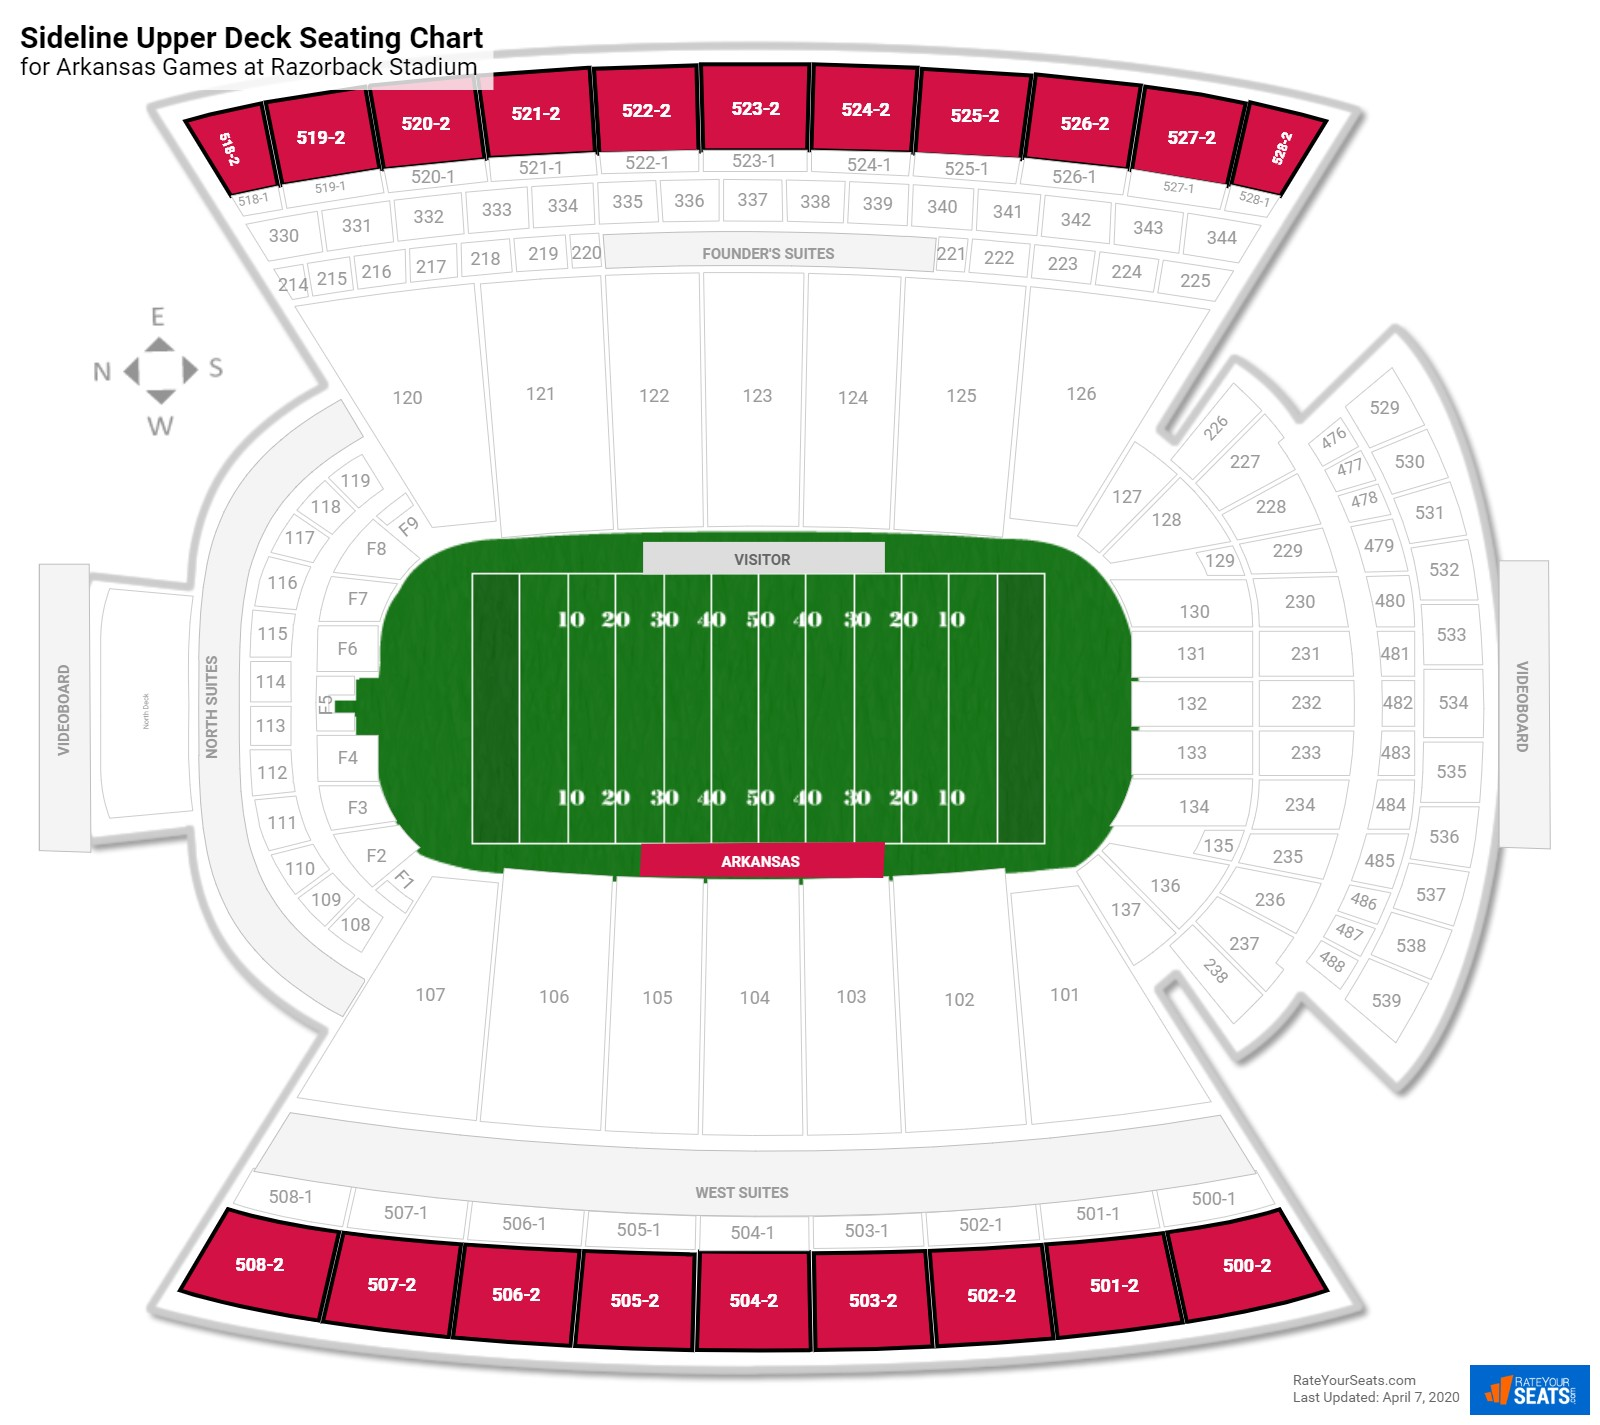 Razorback Stadium Sideline Upper Deck seating chart